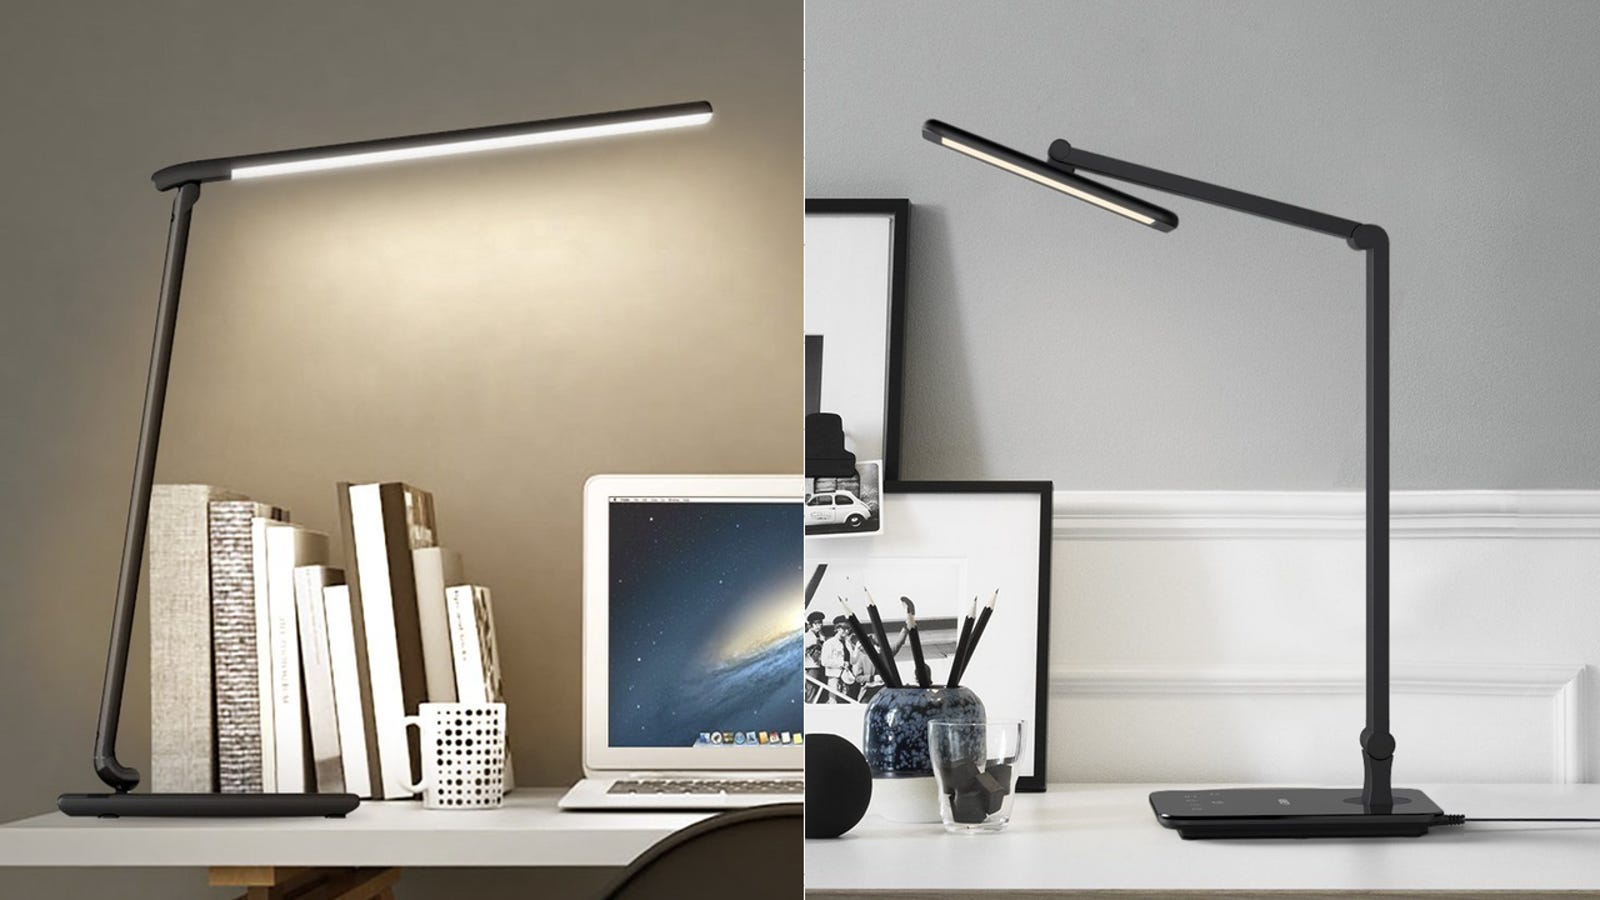 Take Your Pick Of Two Led Desk Lamps With Usb Charging Ports